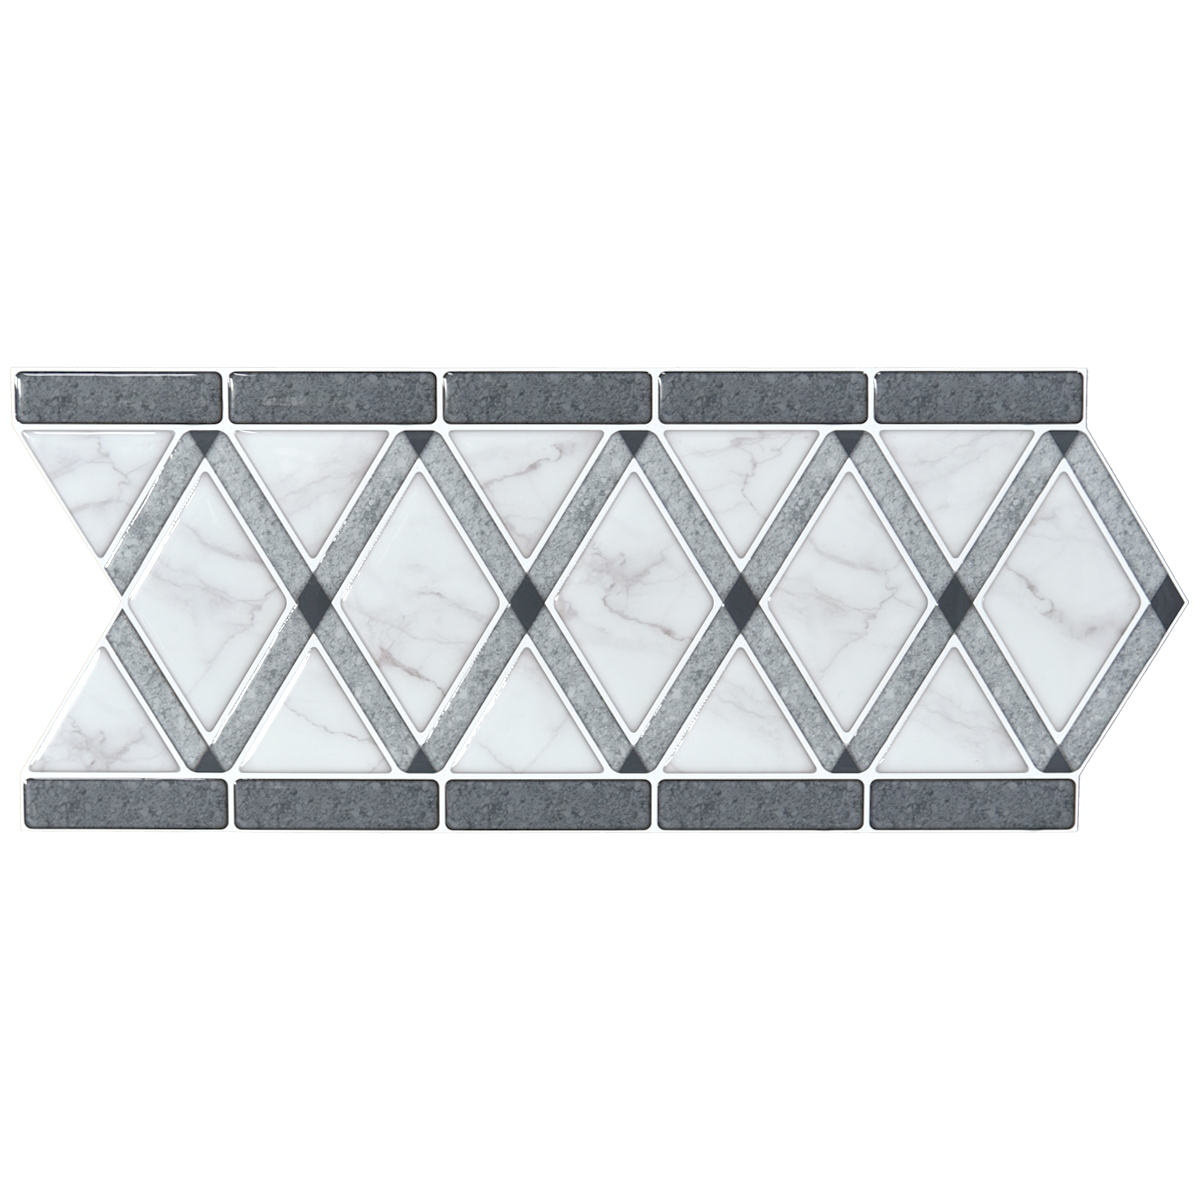 A17101 - Tile Borders Peel and Stick Backsplash, Removable Backsplash for Kitchen, Bathroom, Set of 10, 12.4